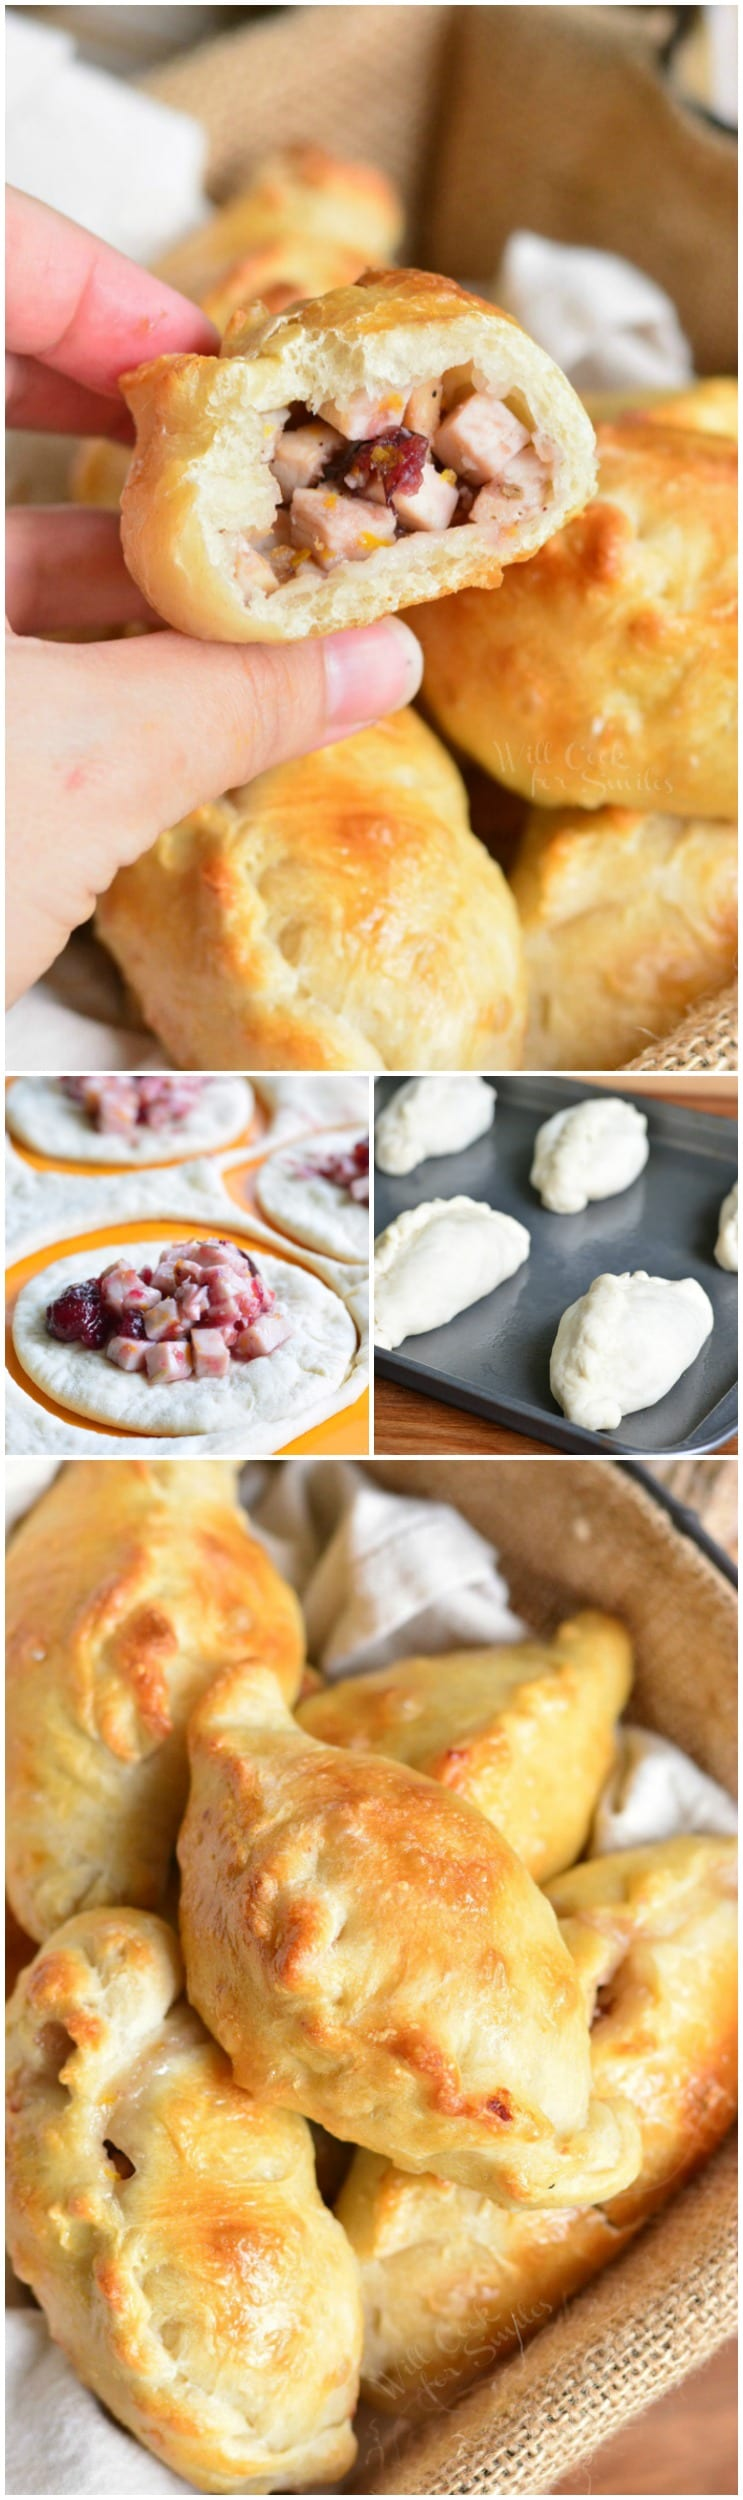 Turkey Cranberry Baked Piroshki collage, first picture is me holding a piroshki in my hand, second is putting the cranberry and turkey on the dough, third is pitoshki in a basket